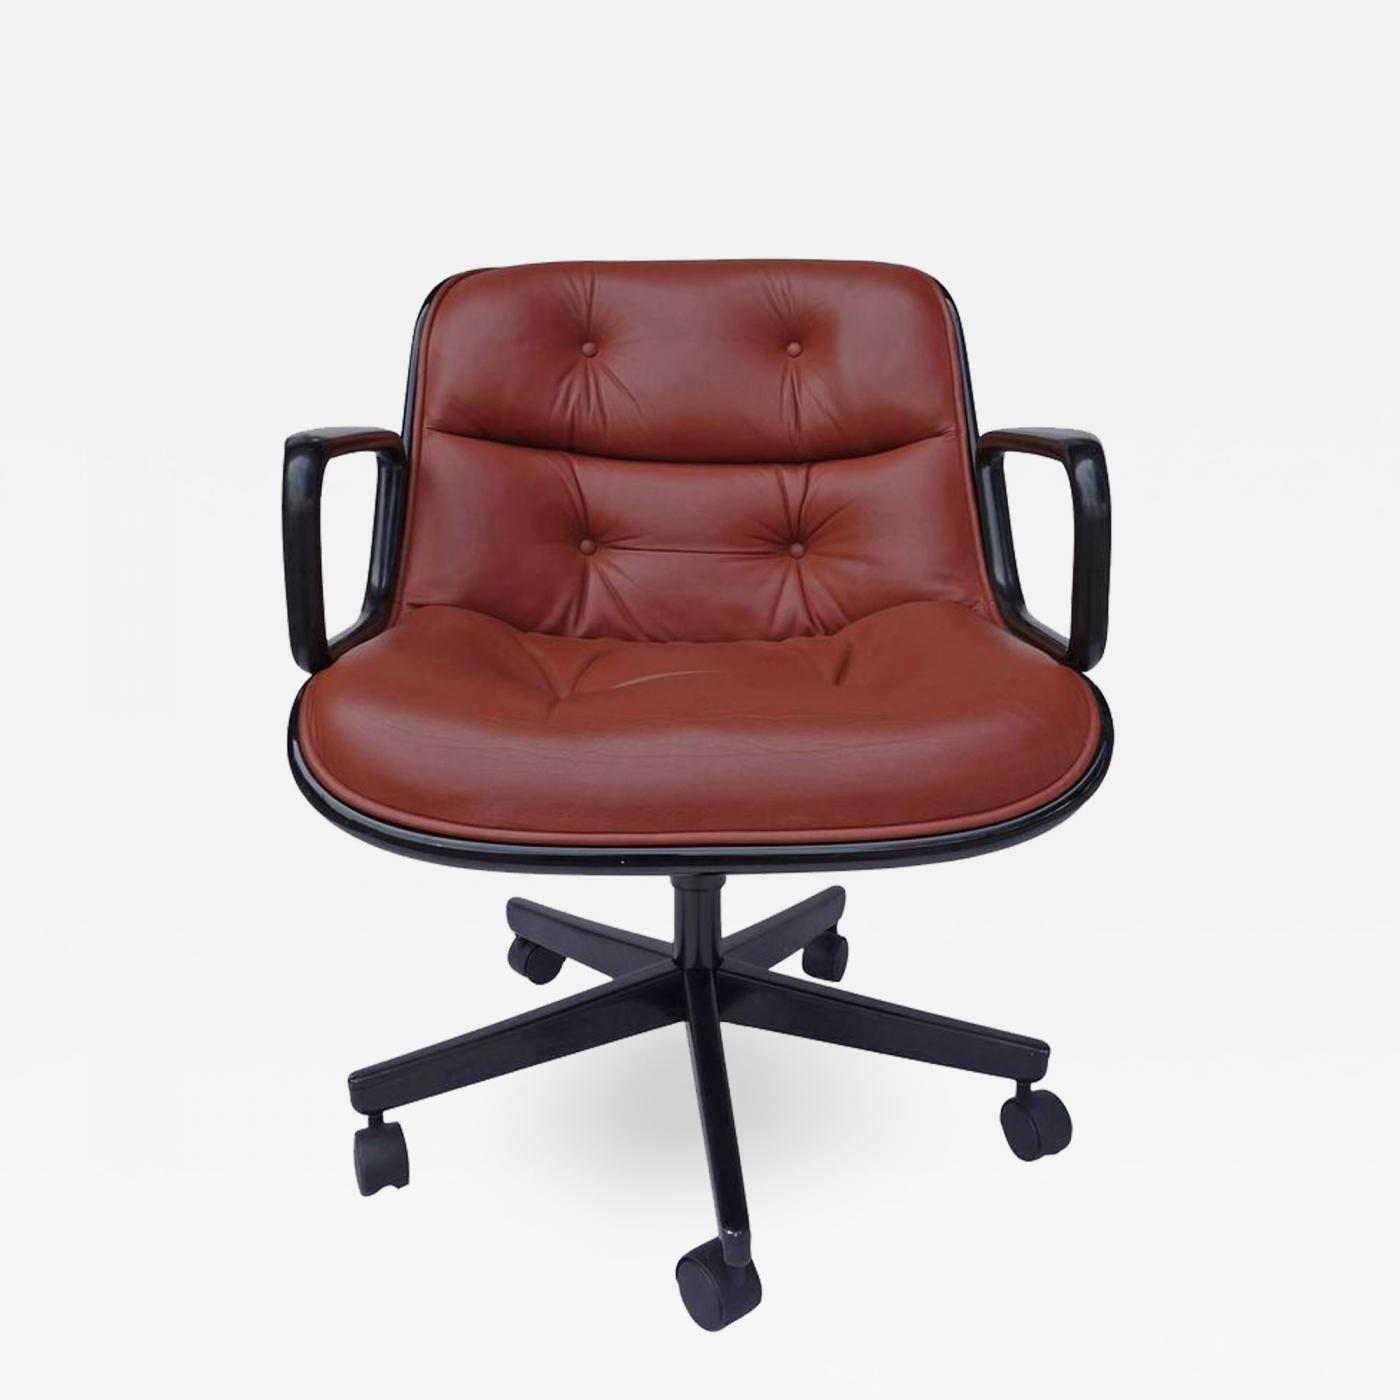 Listings / Furniture / Seating / Office Chairs · Charles Pollock ...